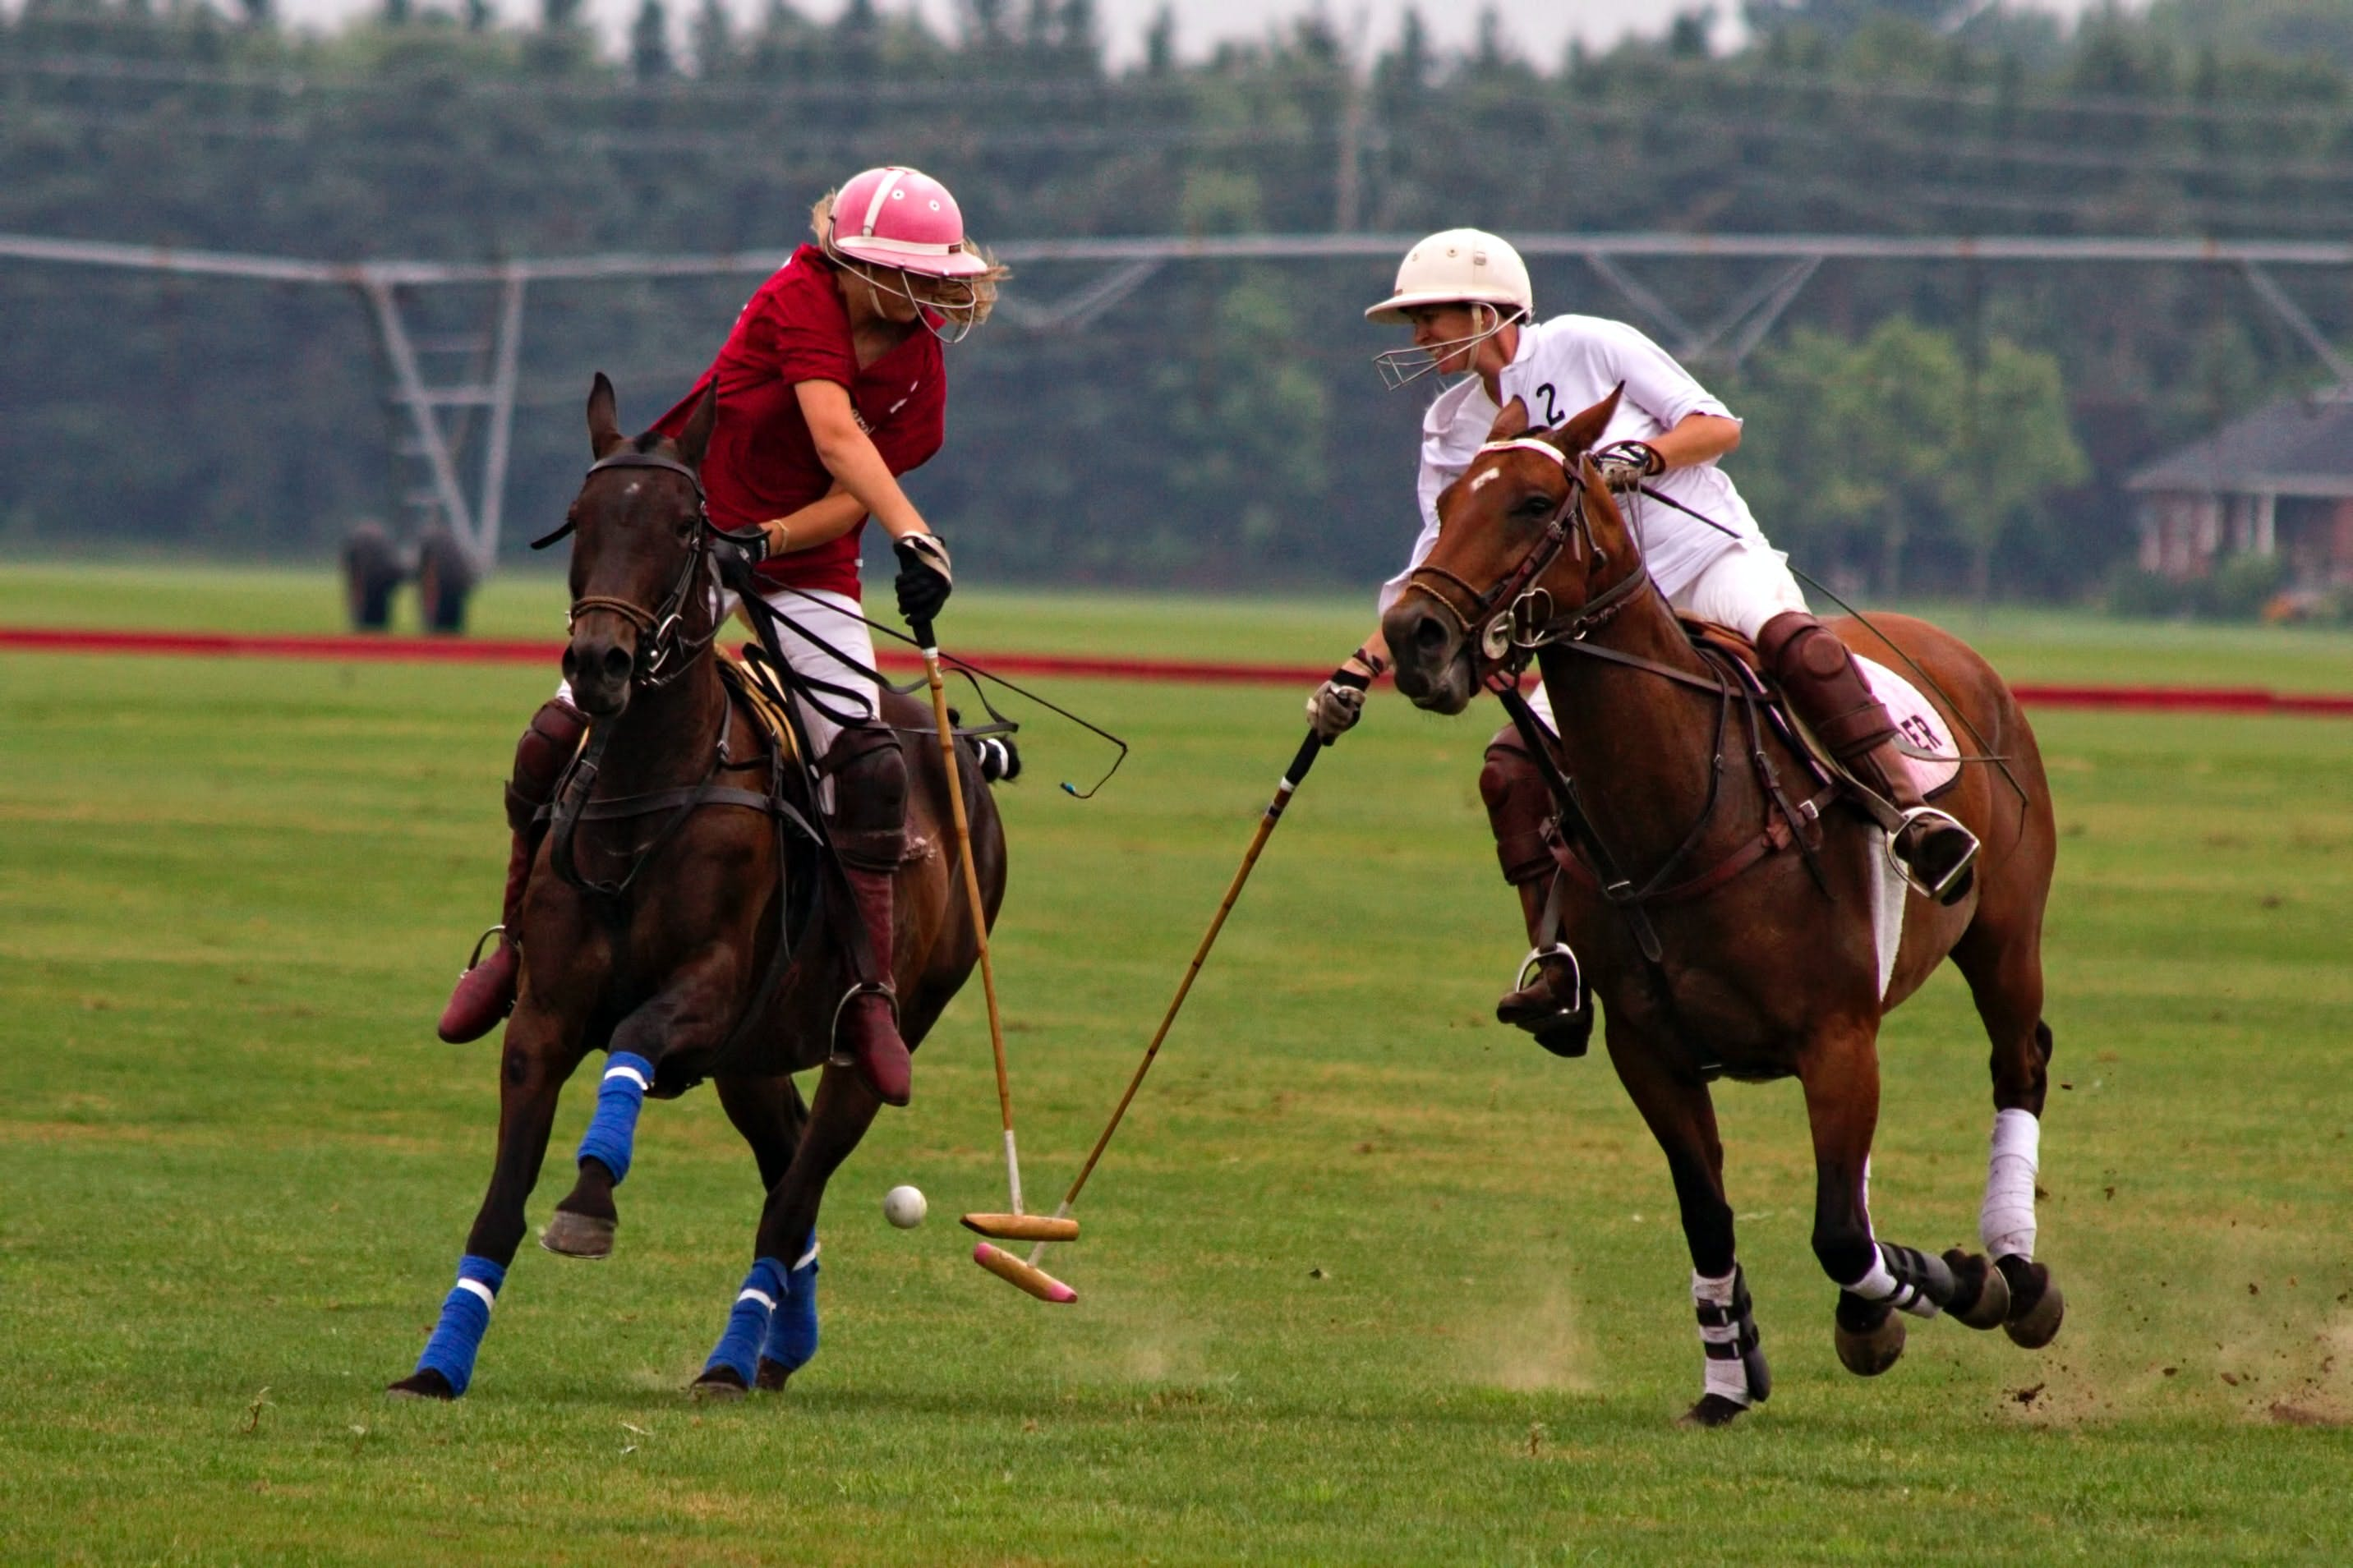 Two polo players going for the ball